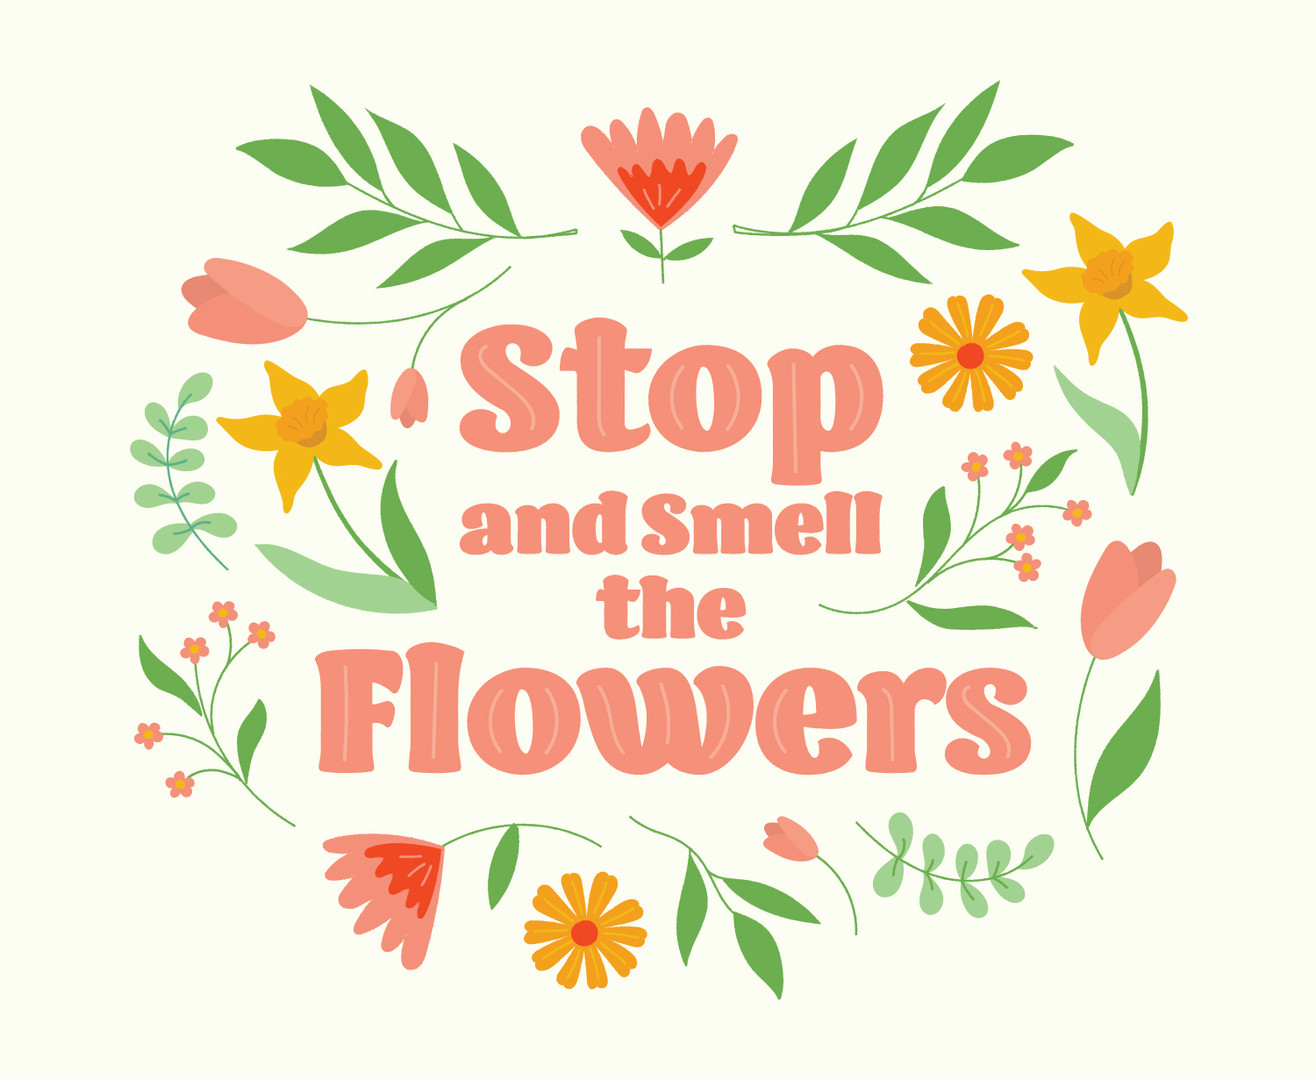 stop_and_smell_the_flowers.jpg